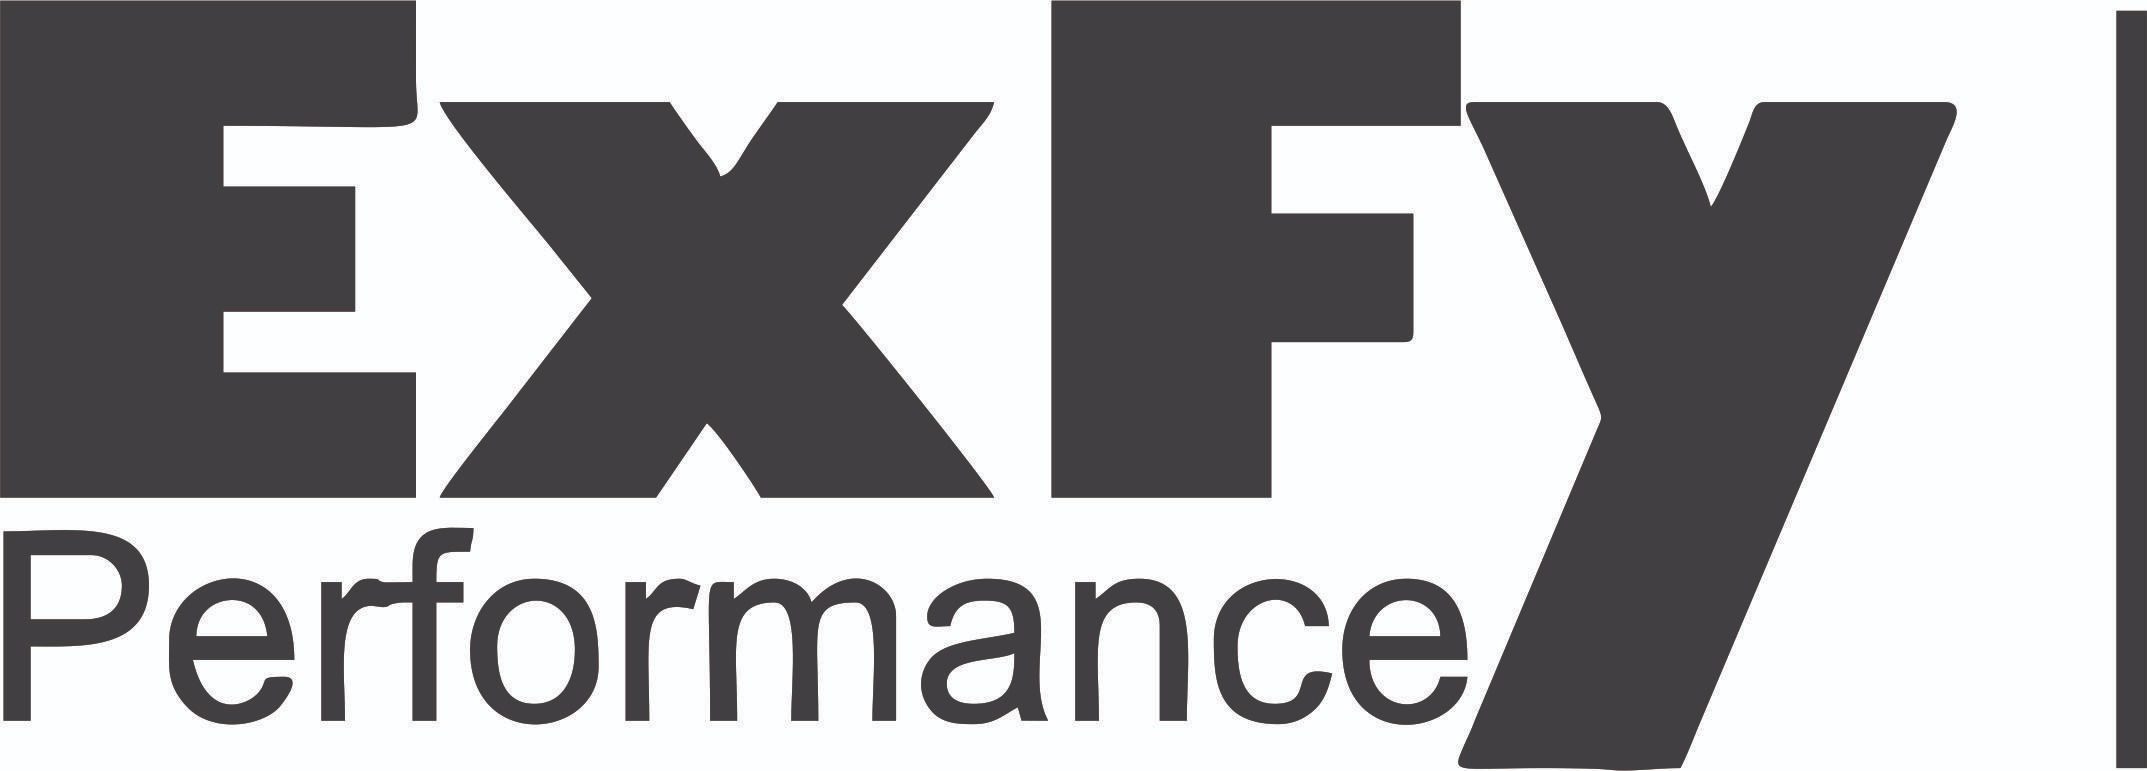 Exfy Performance